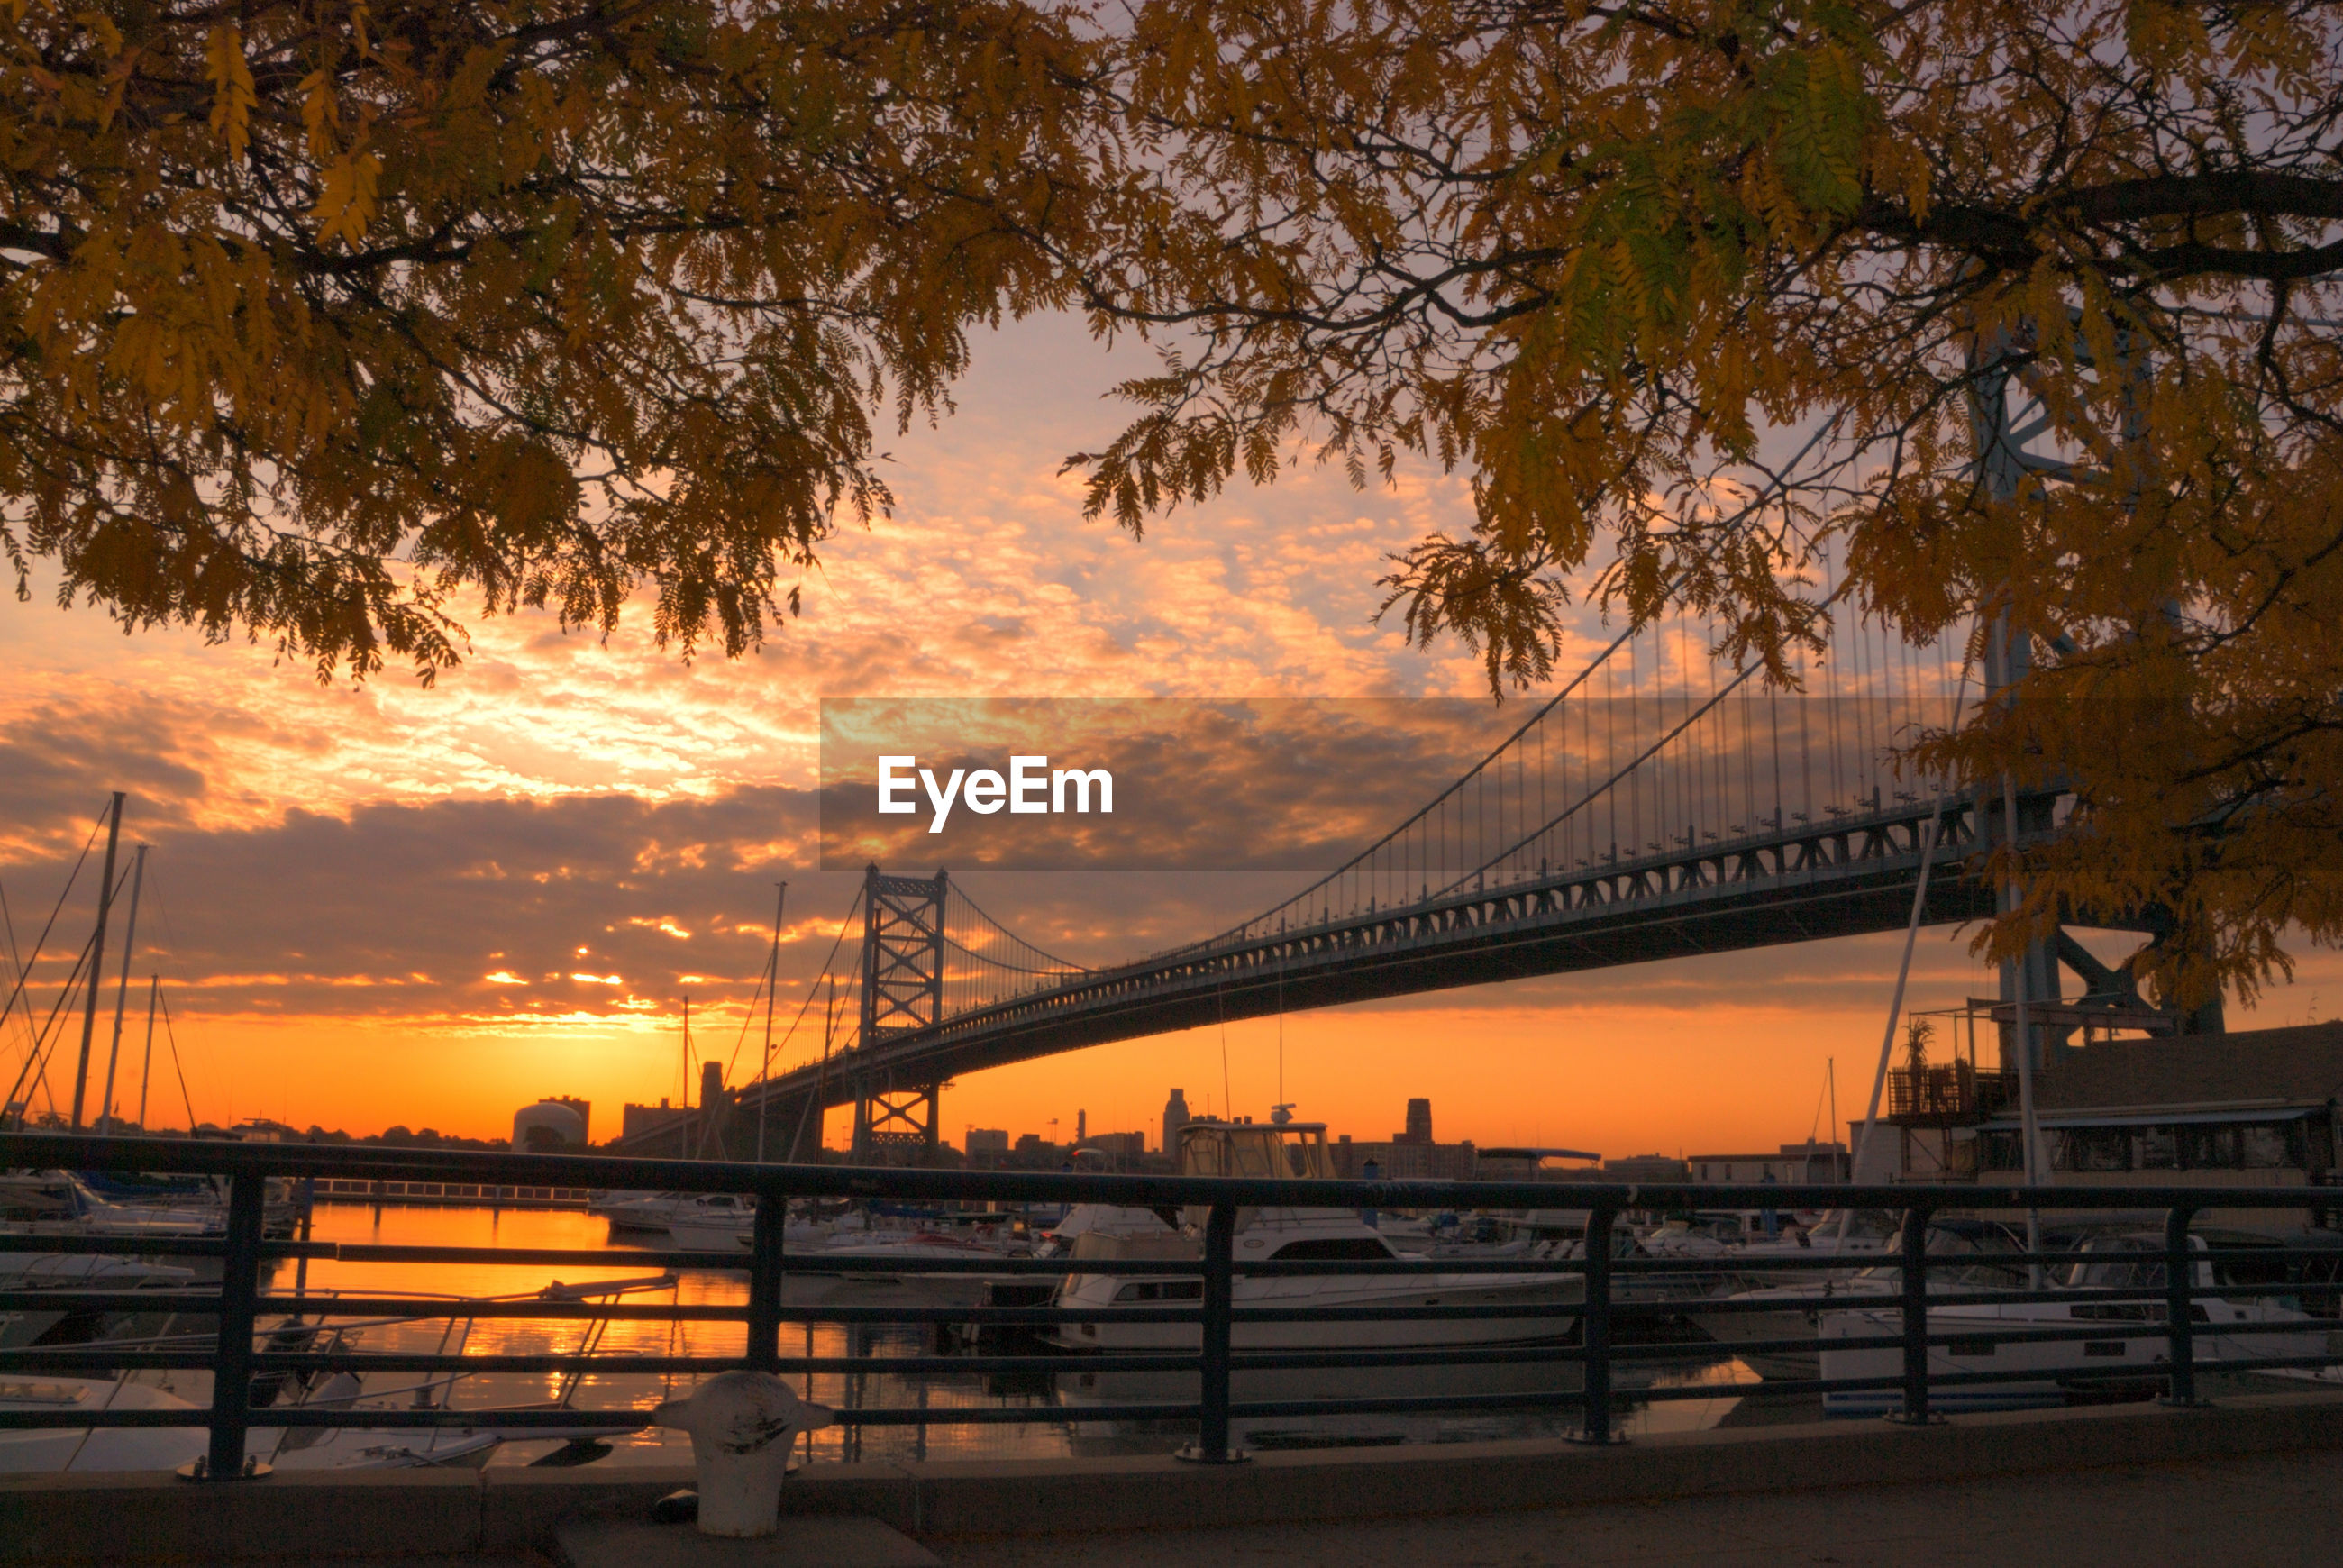 VIEW OF SUSPENSION BRIDGE DURING SUNSET